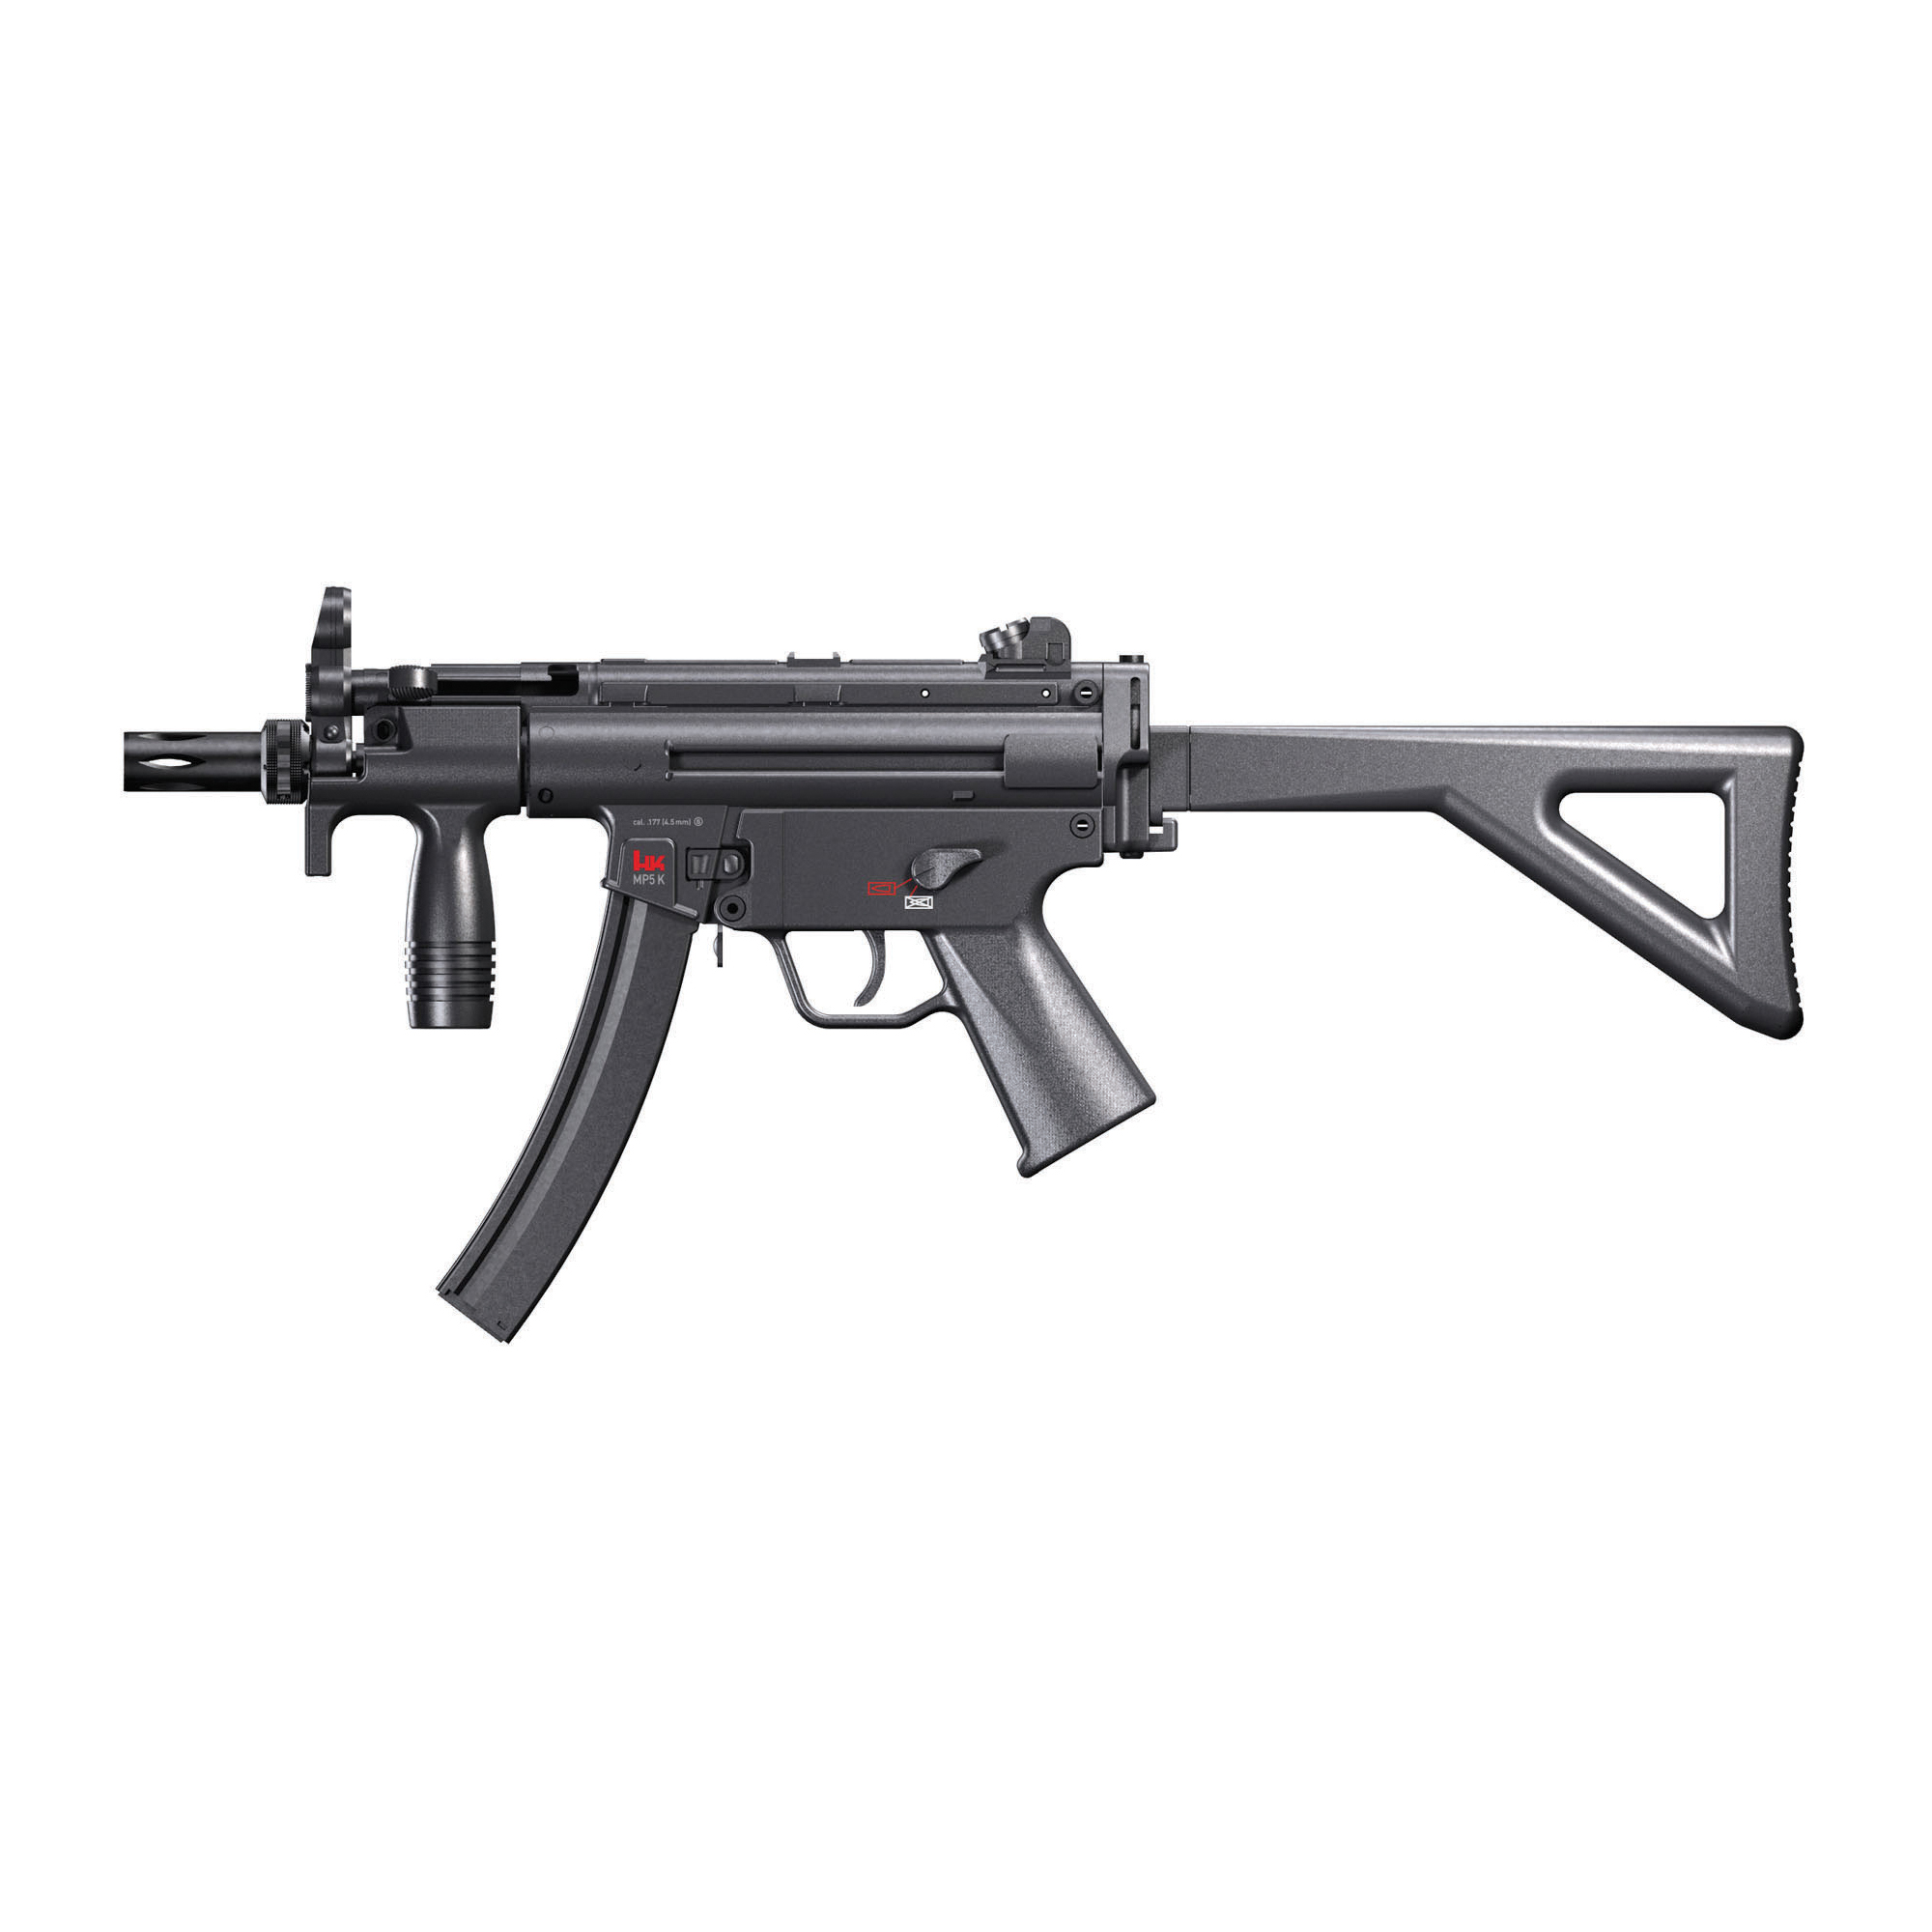 Umx Hk Mp5k-pdw Bb Rfl 400fps